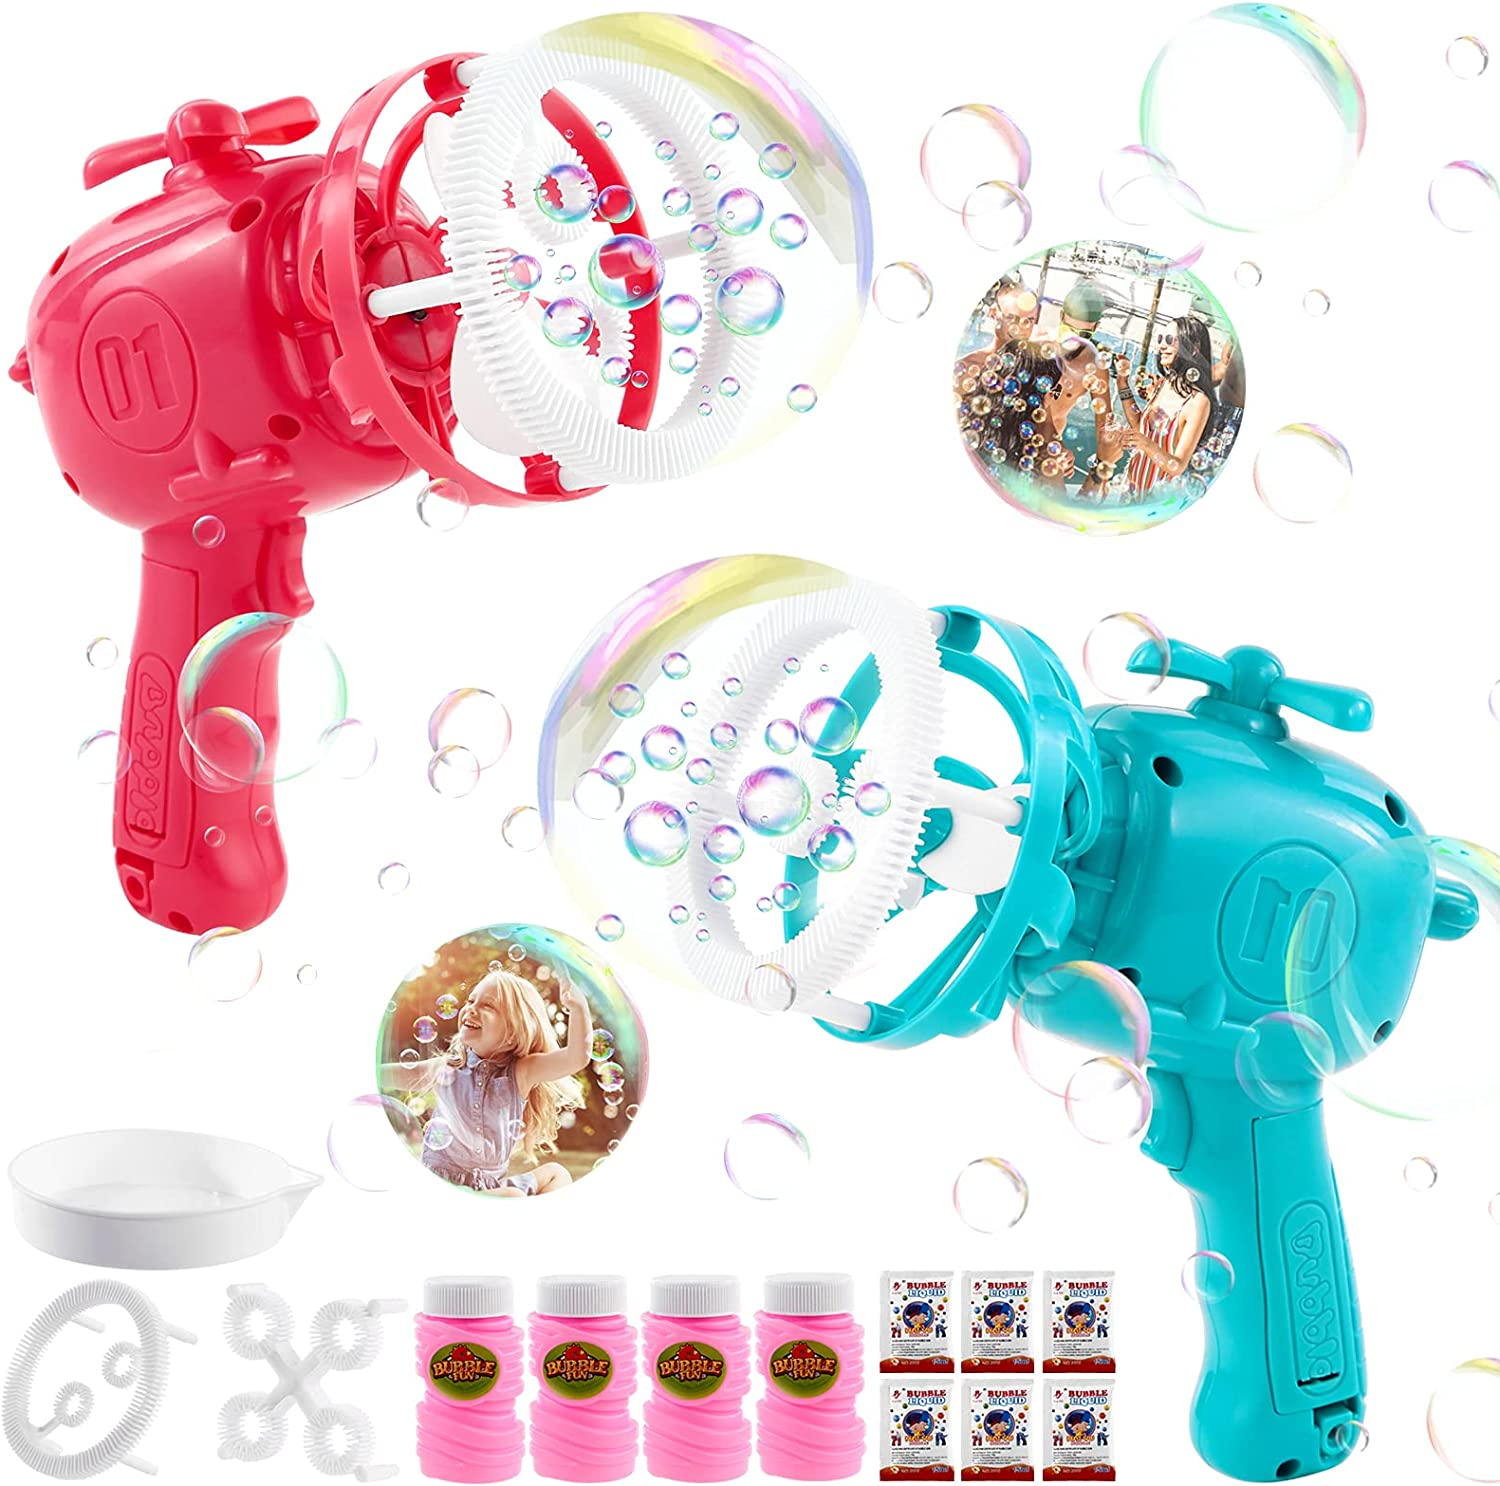 GOHEYI 2 Pack Bubble Guns Blower for Kids with 4 Bottles Bubble,